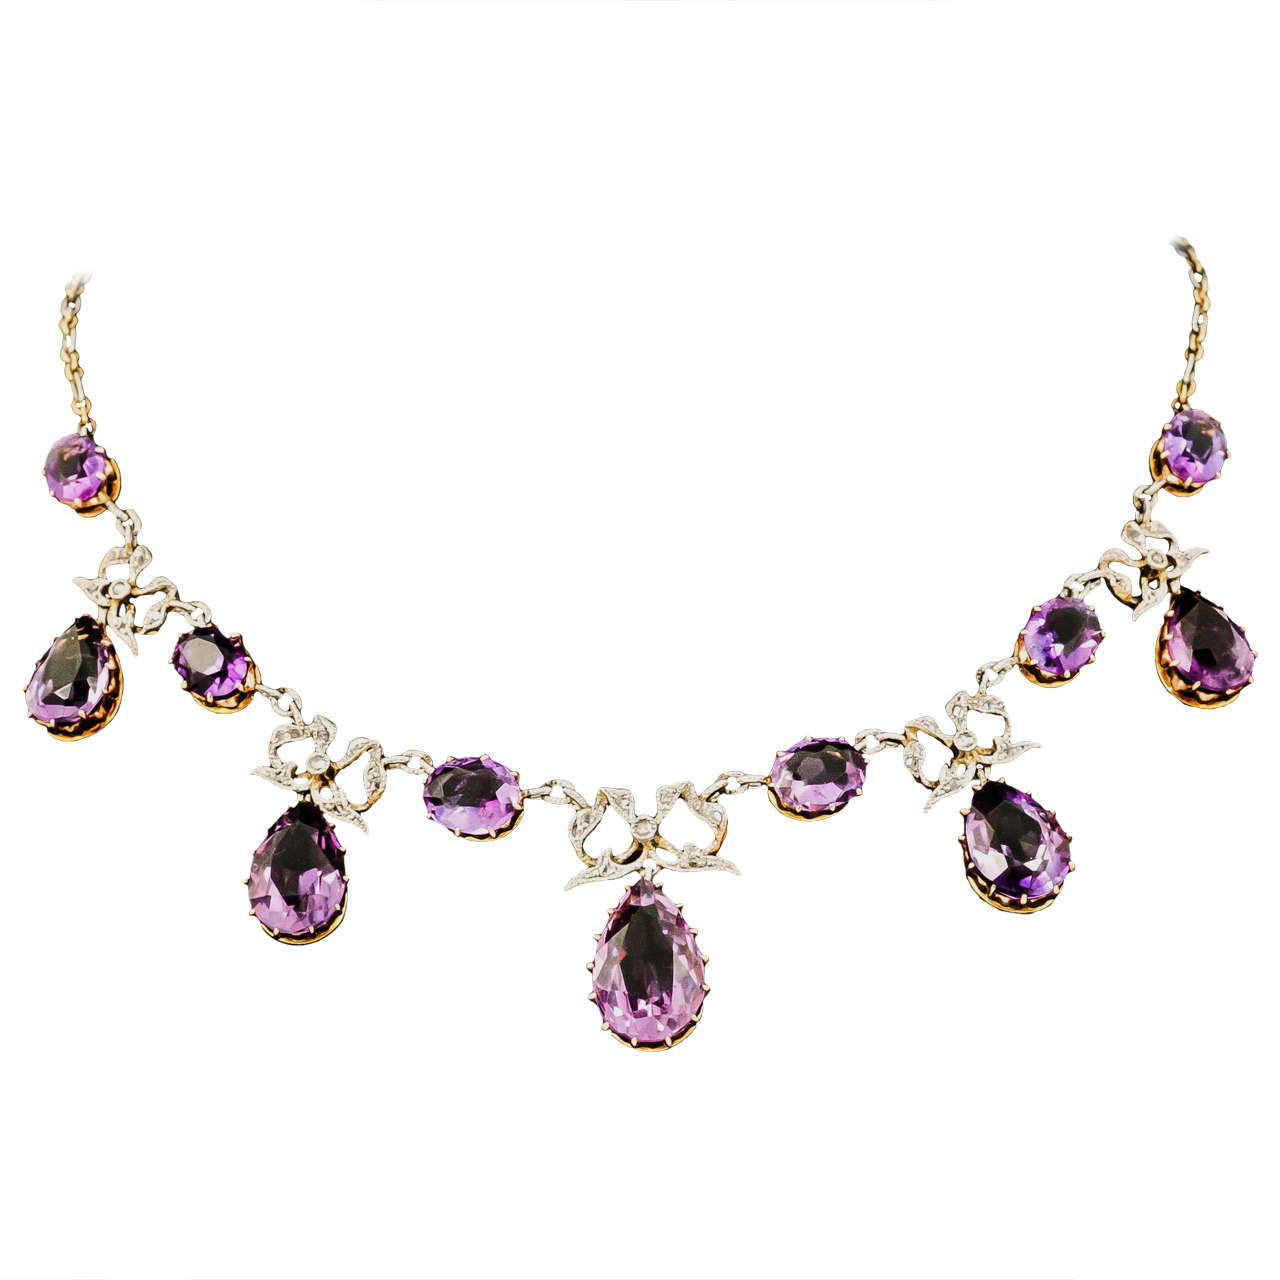 Amethyst and Diamond Necklet